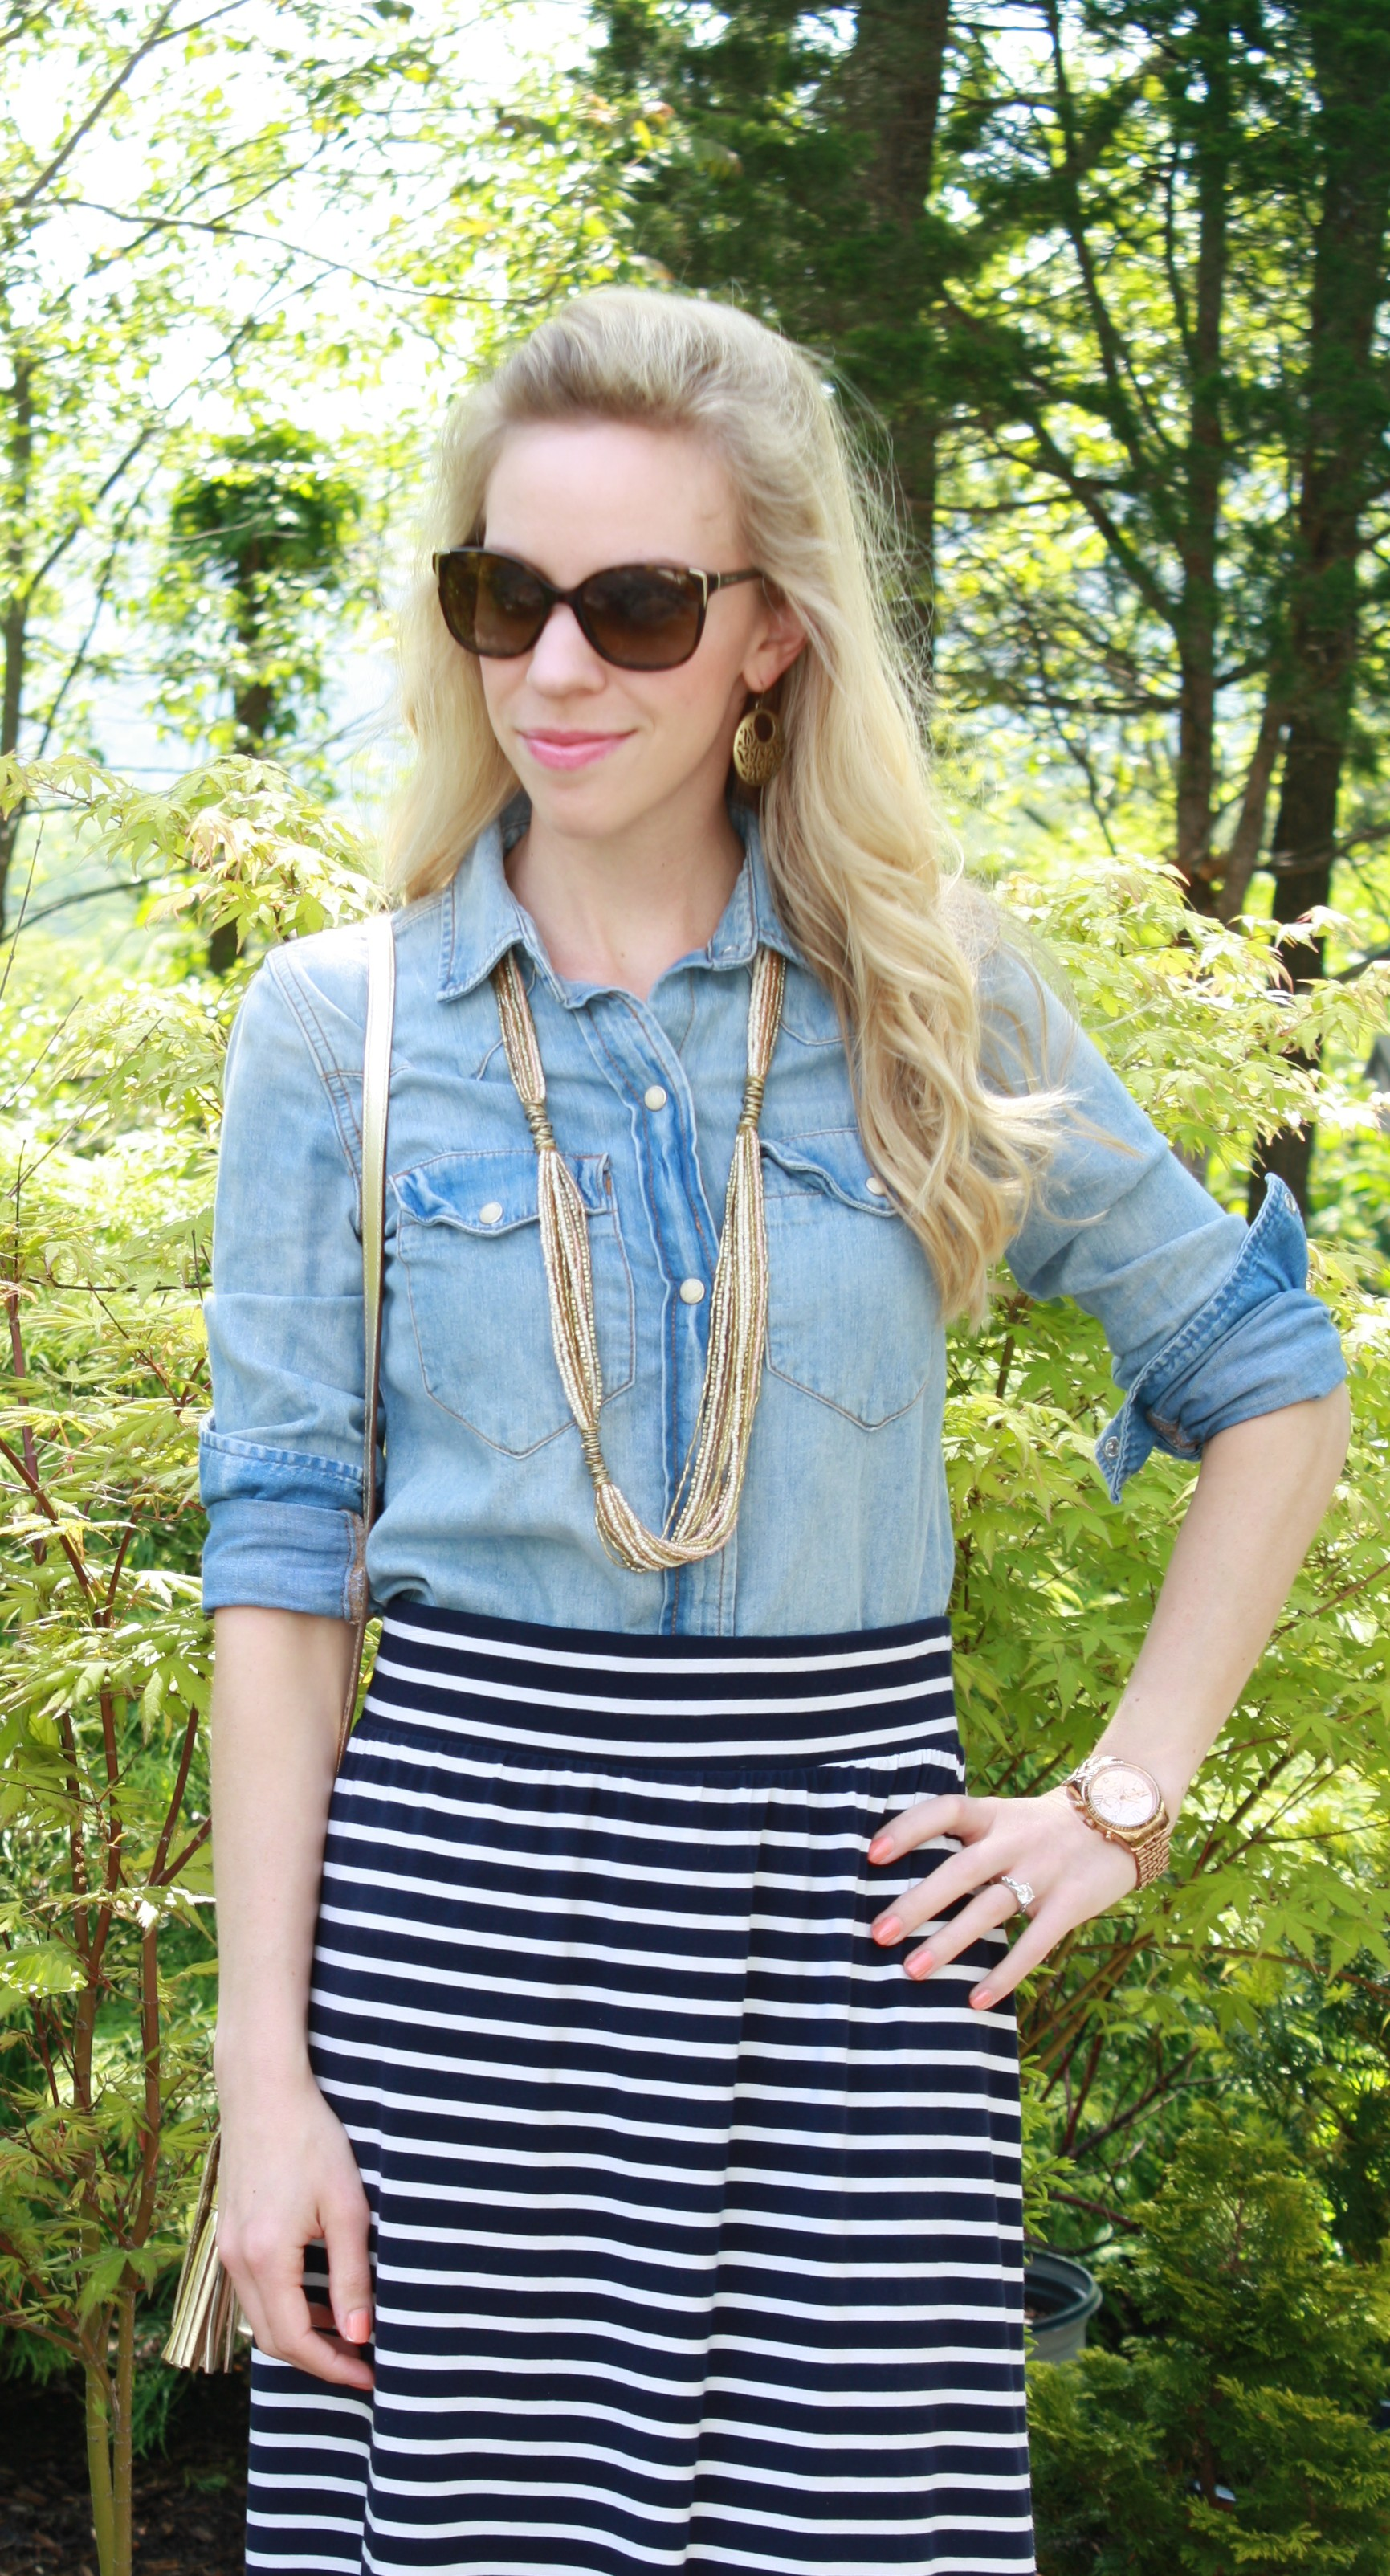 dbe001617d91 J. Crew chambray denim shirt, long seed bead necklace, navy striped maxi  skirt, gold jewelry